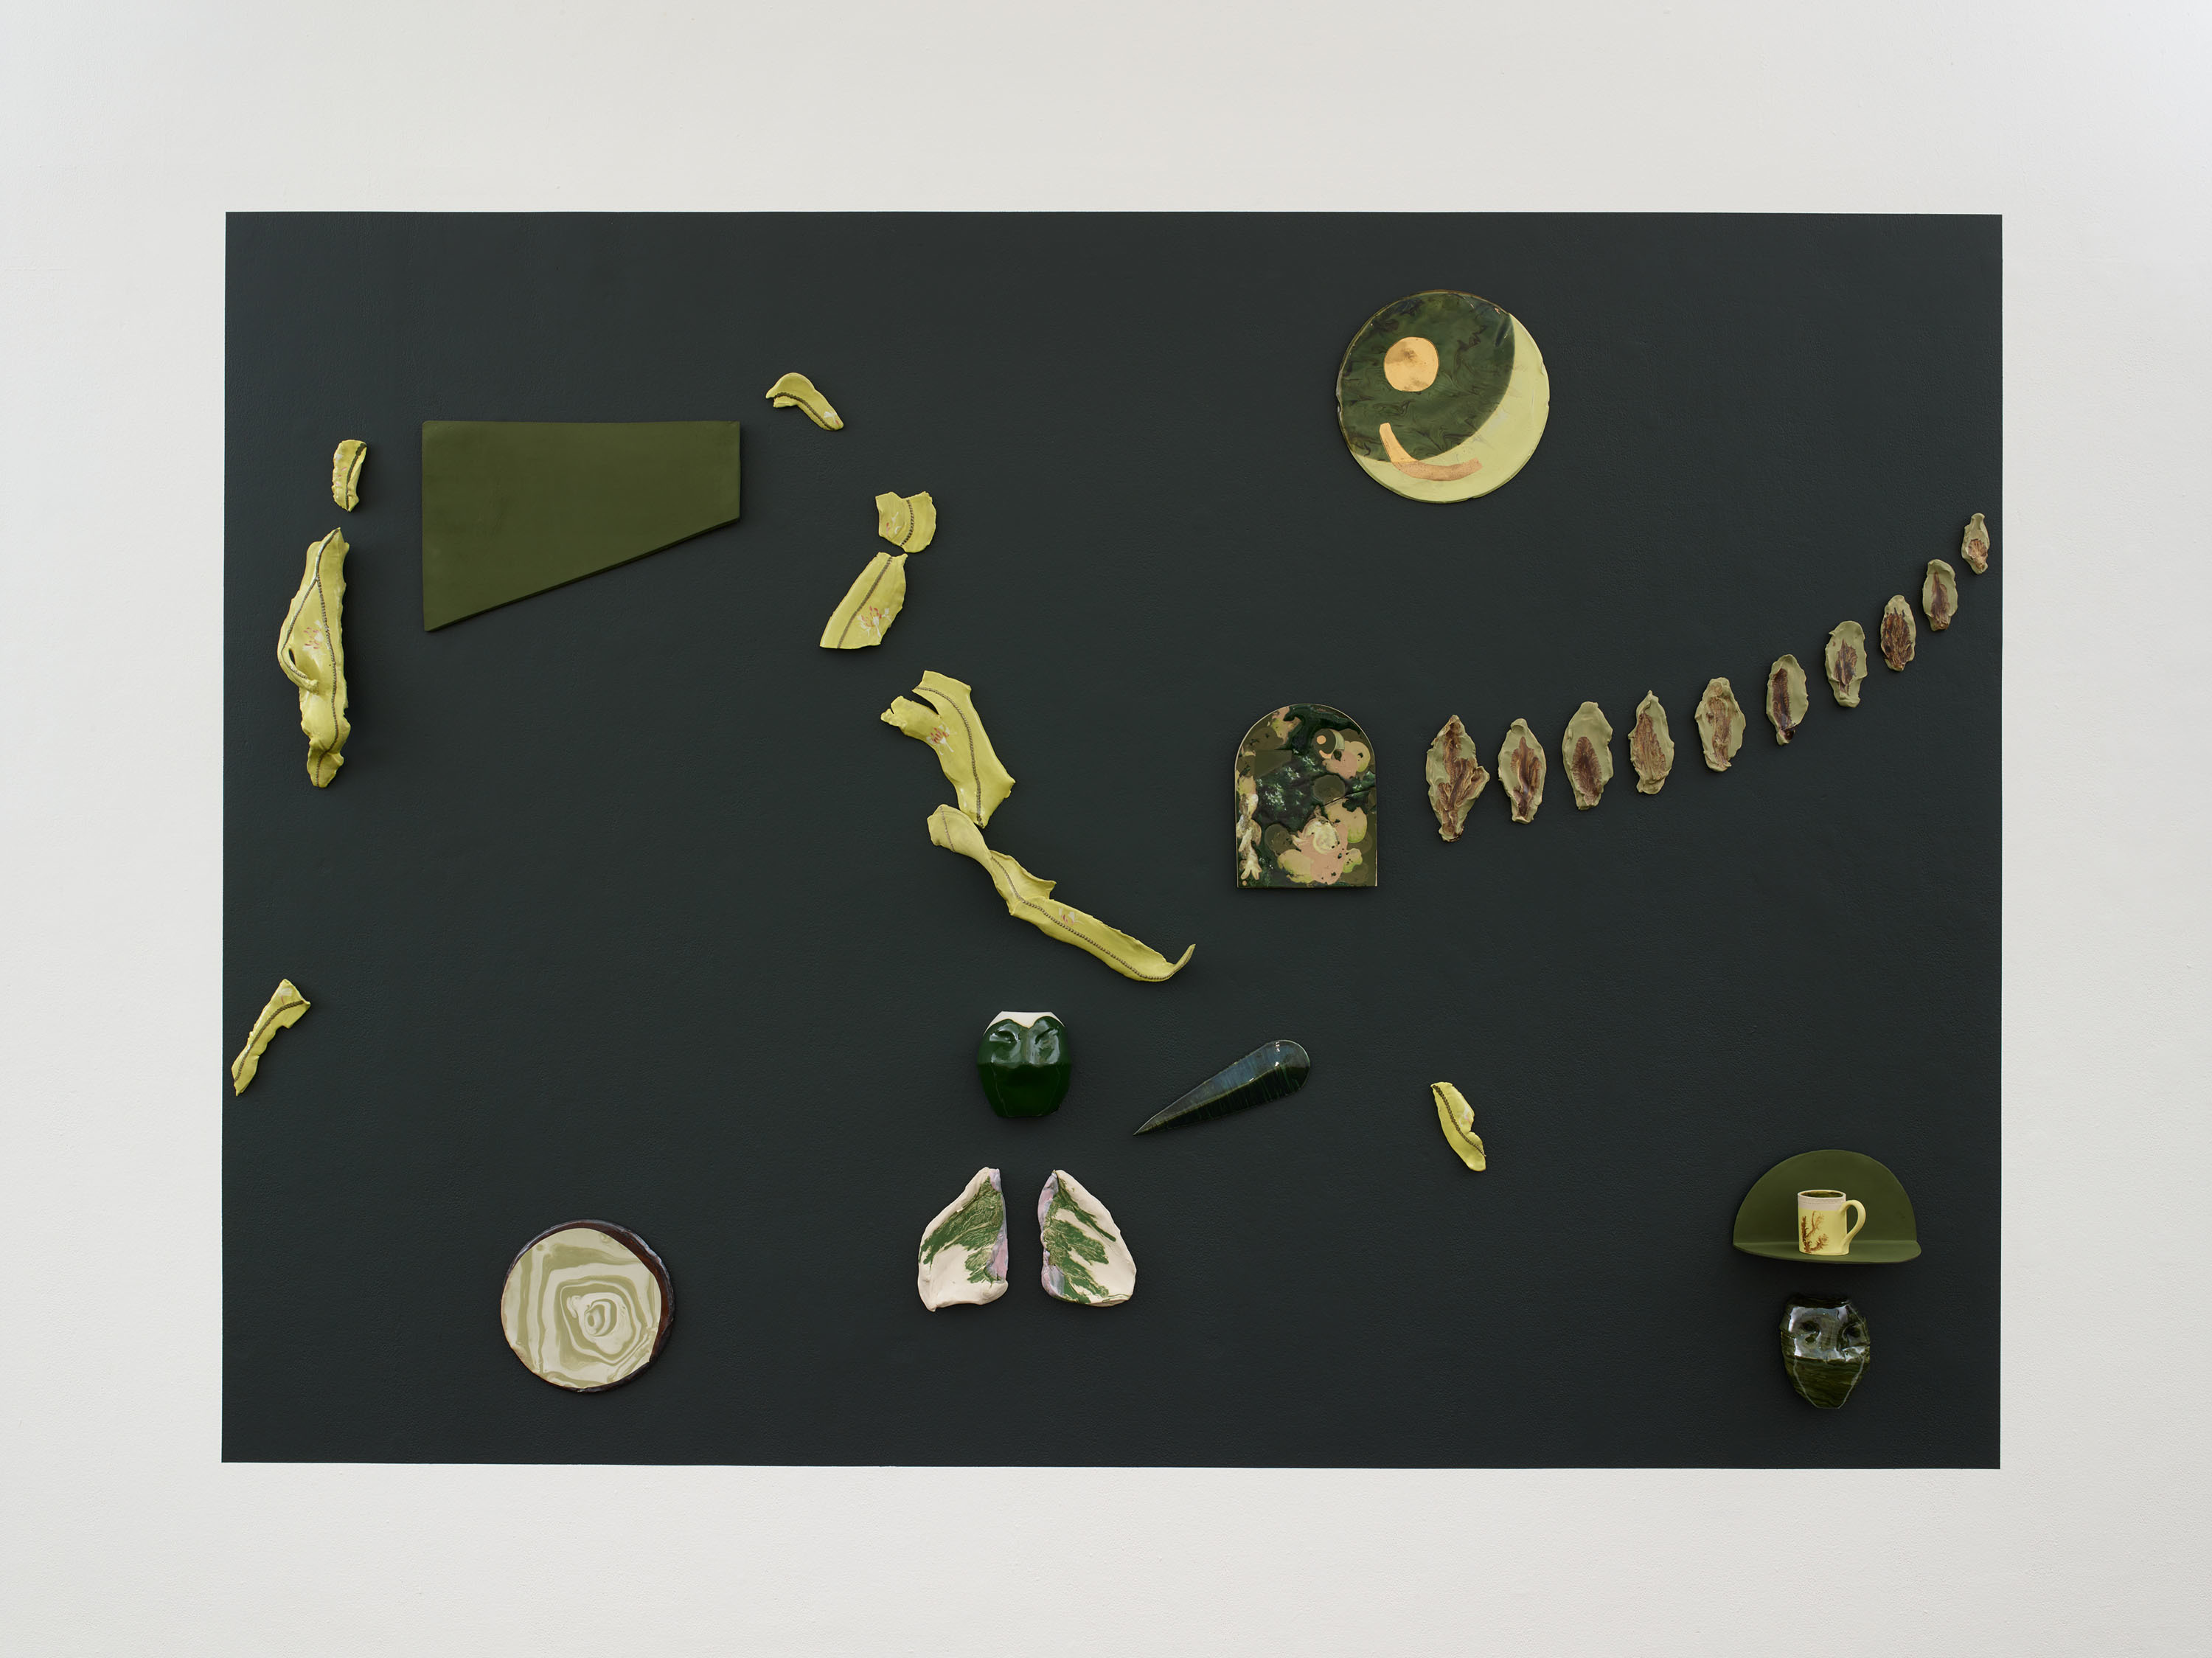 Jerwood_Makers_Open_Bethan-Lloyd-Worthington-Making-all-the-greens-unstable-2019-photography-by-Anna.jpg#asset:2070